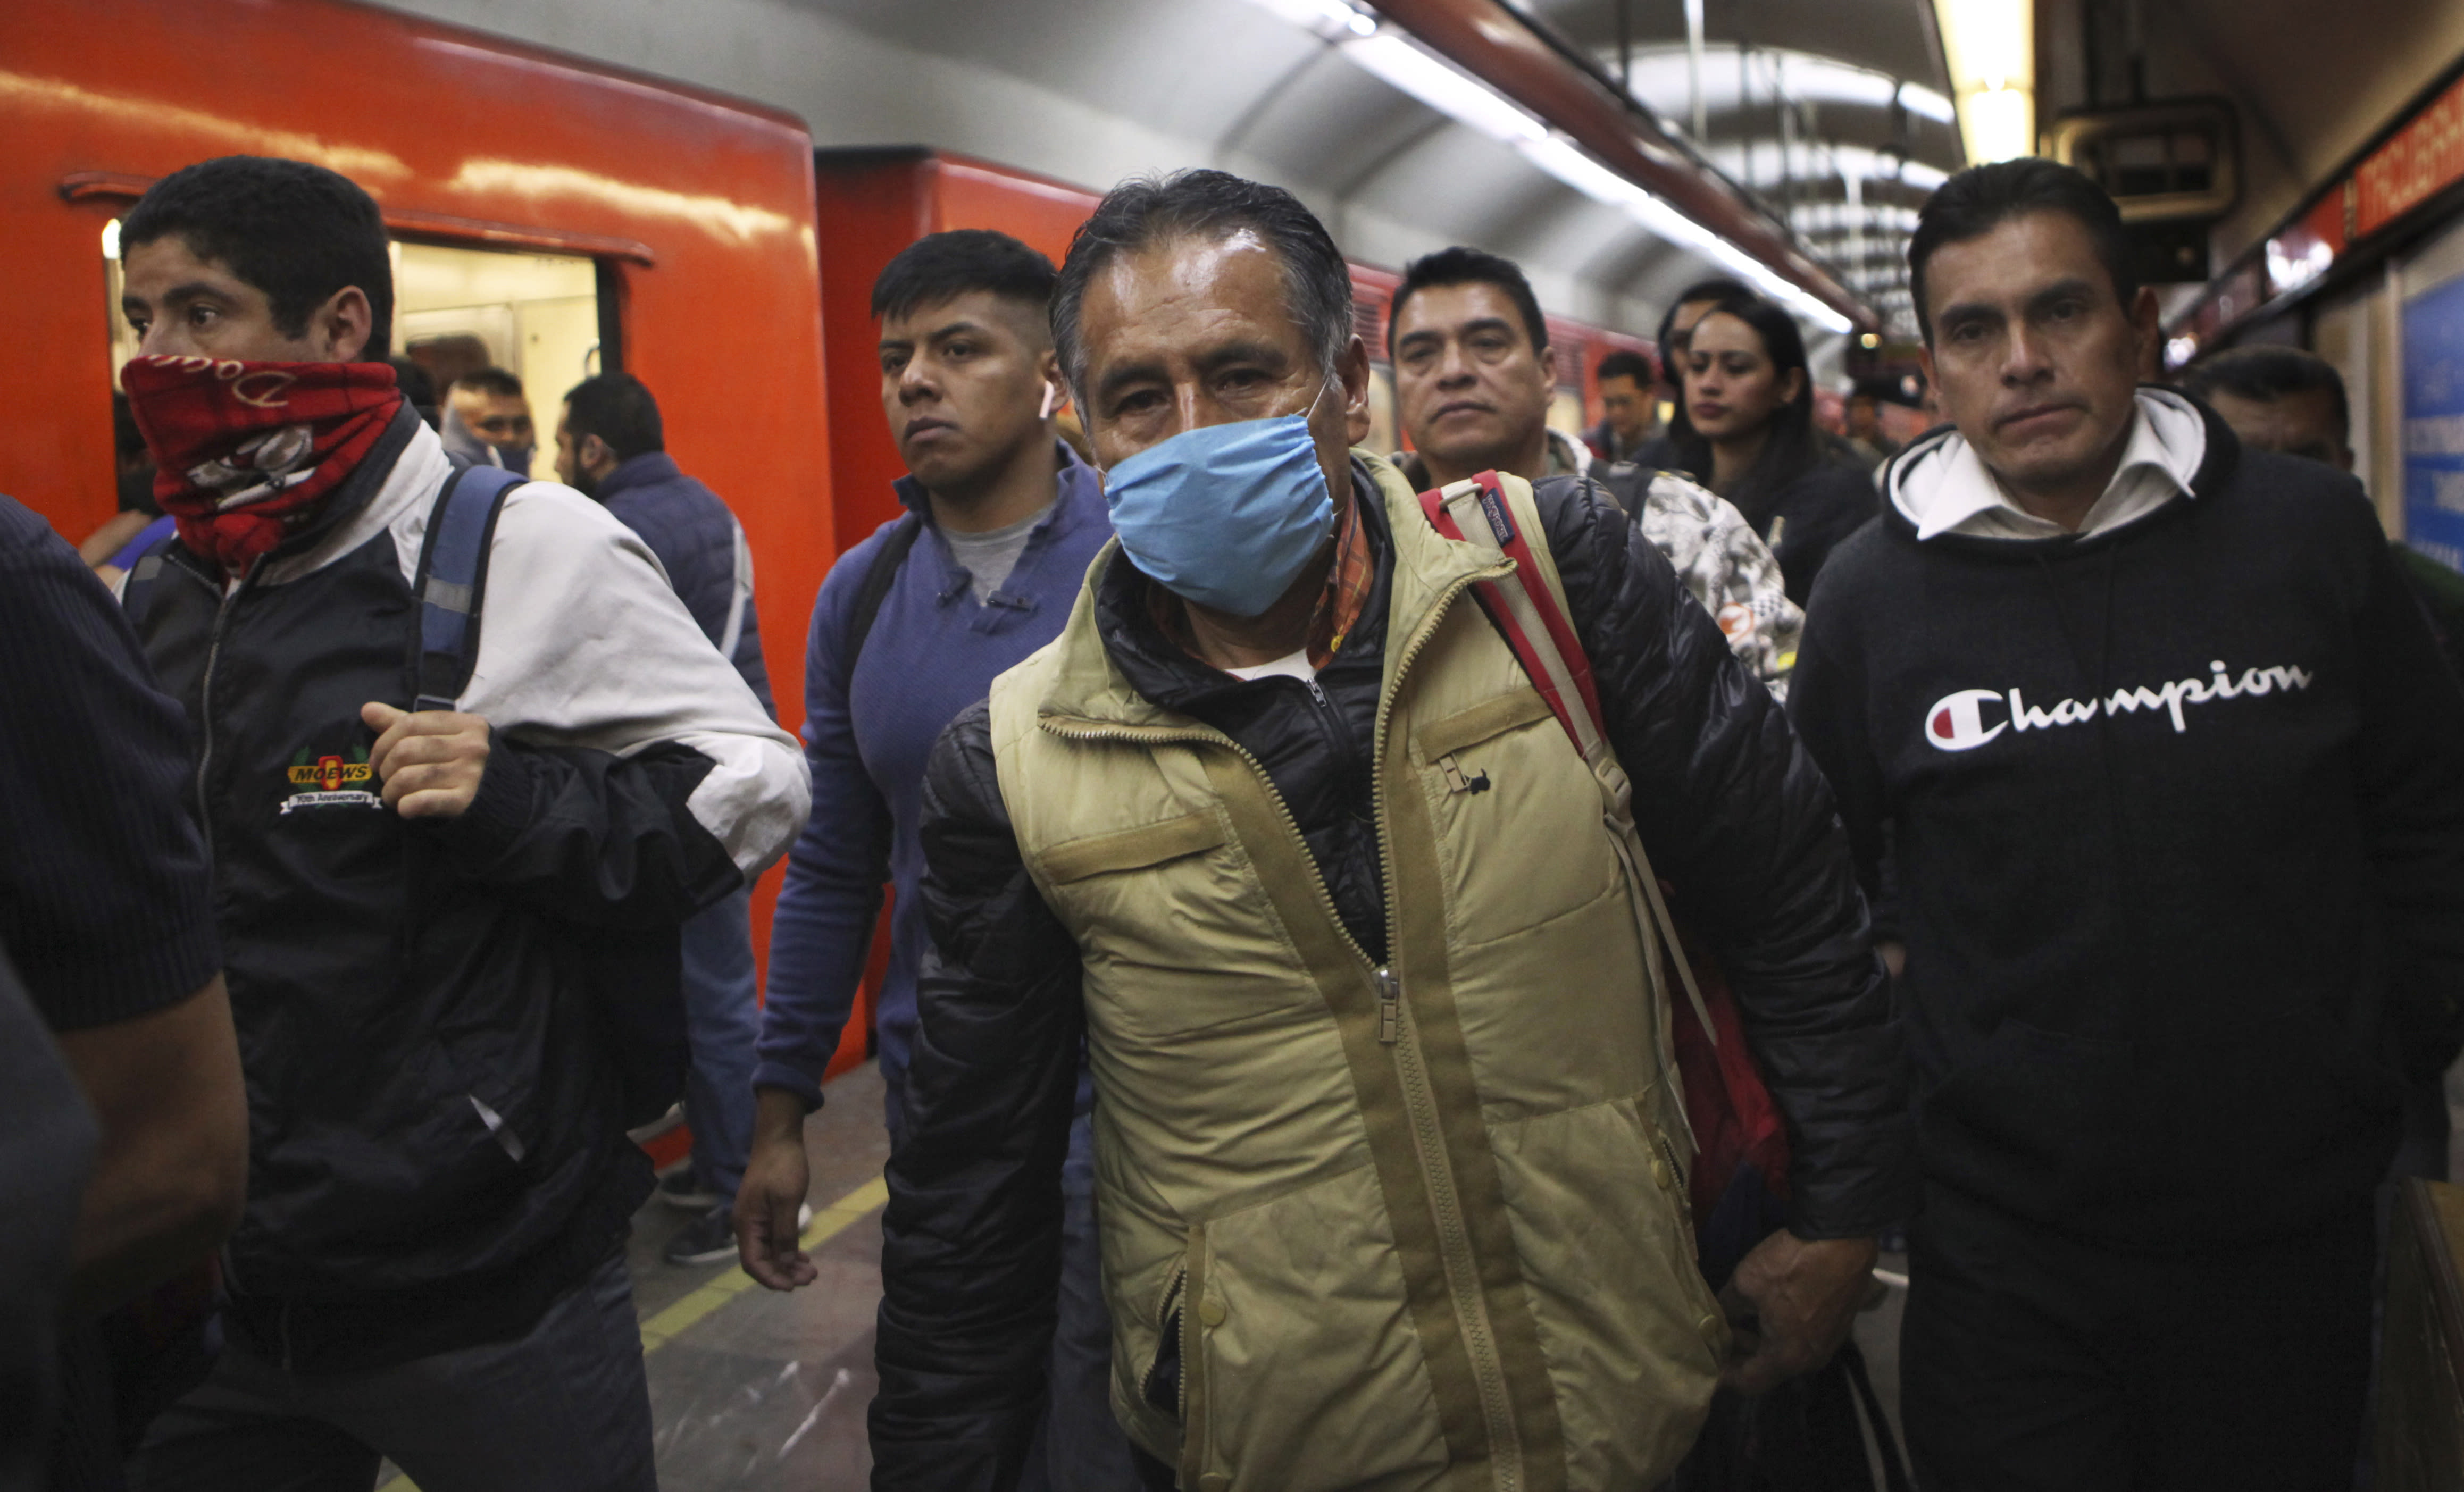 A commuter wears a protective mask as a precaution against the spread of the new coronavirus in the metro in Mexico City, Thursday, March 19, 2020. (AP Photo/Marco Ugarte)